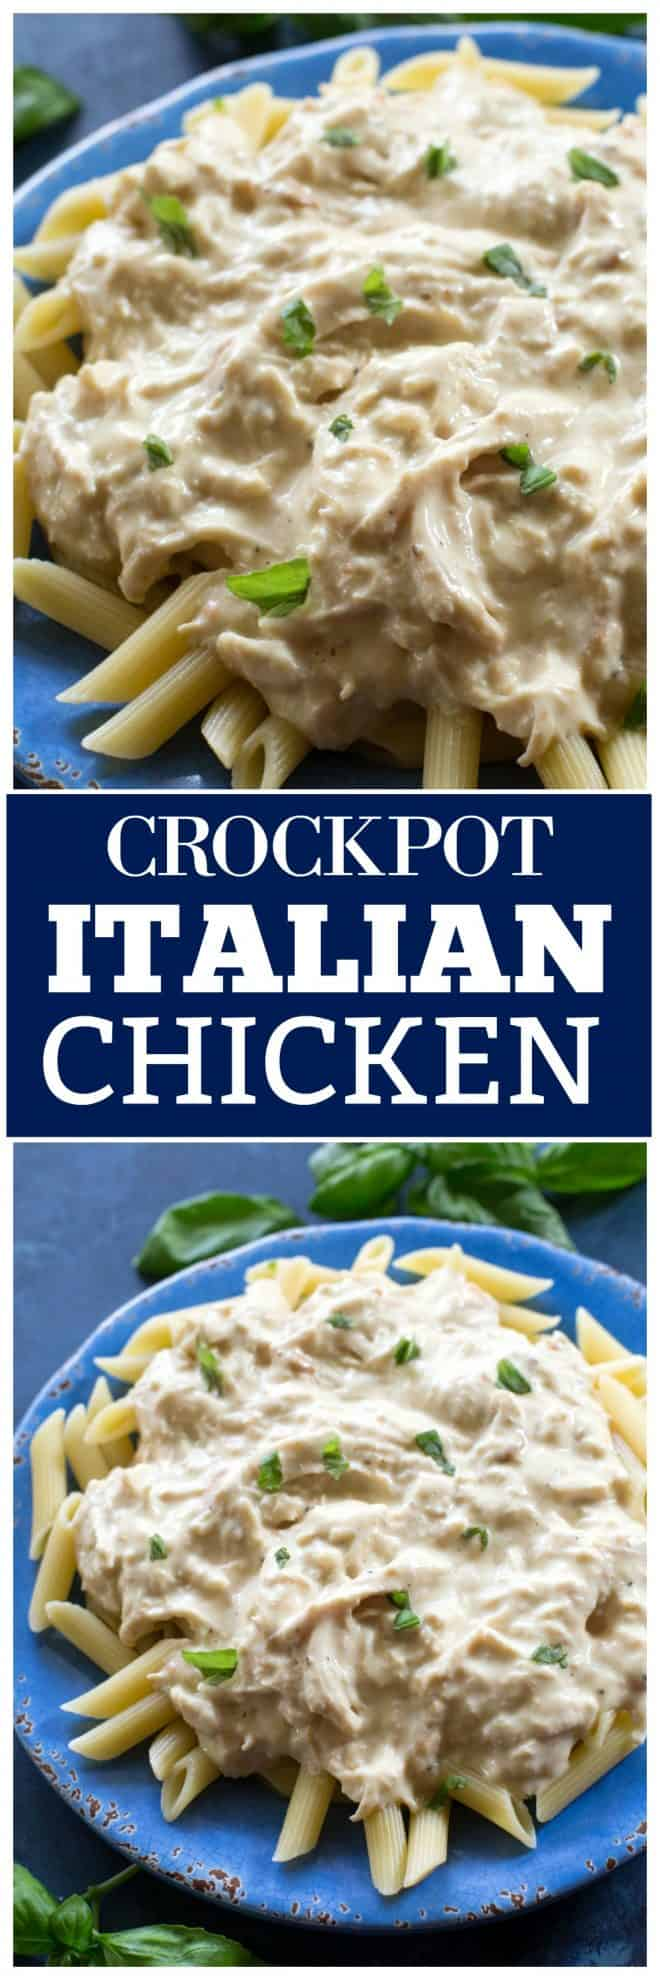 This Crockpot Italian Chicken is one of my family favorites. Everything is thrown in the slow cooker for an easy, creamy, tasty dinner.  It's tender and topped with a creamy Italian flavored dressing. Serve over pasta or rice! #crockpot #italian #chicken #recipe #dinner #slowcooker